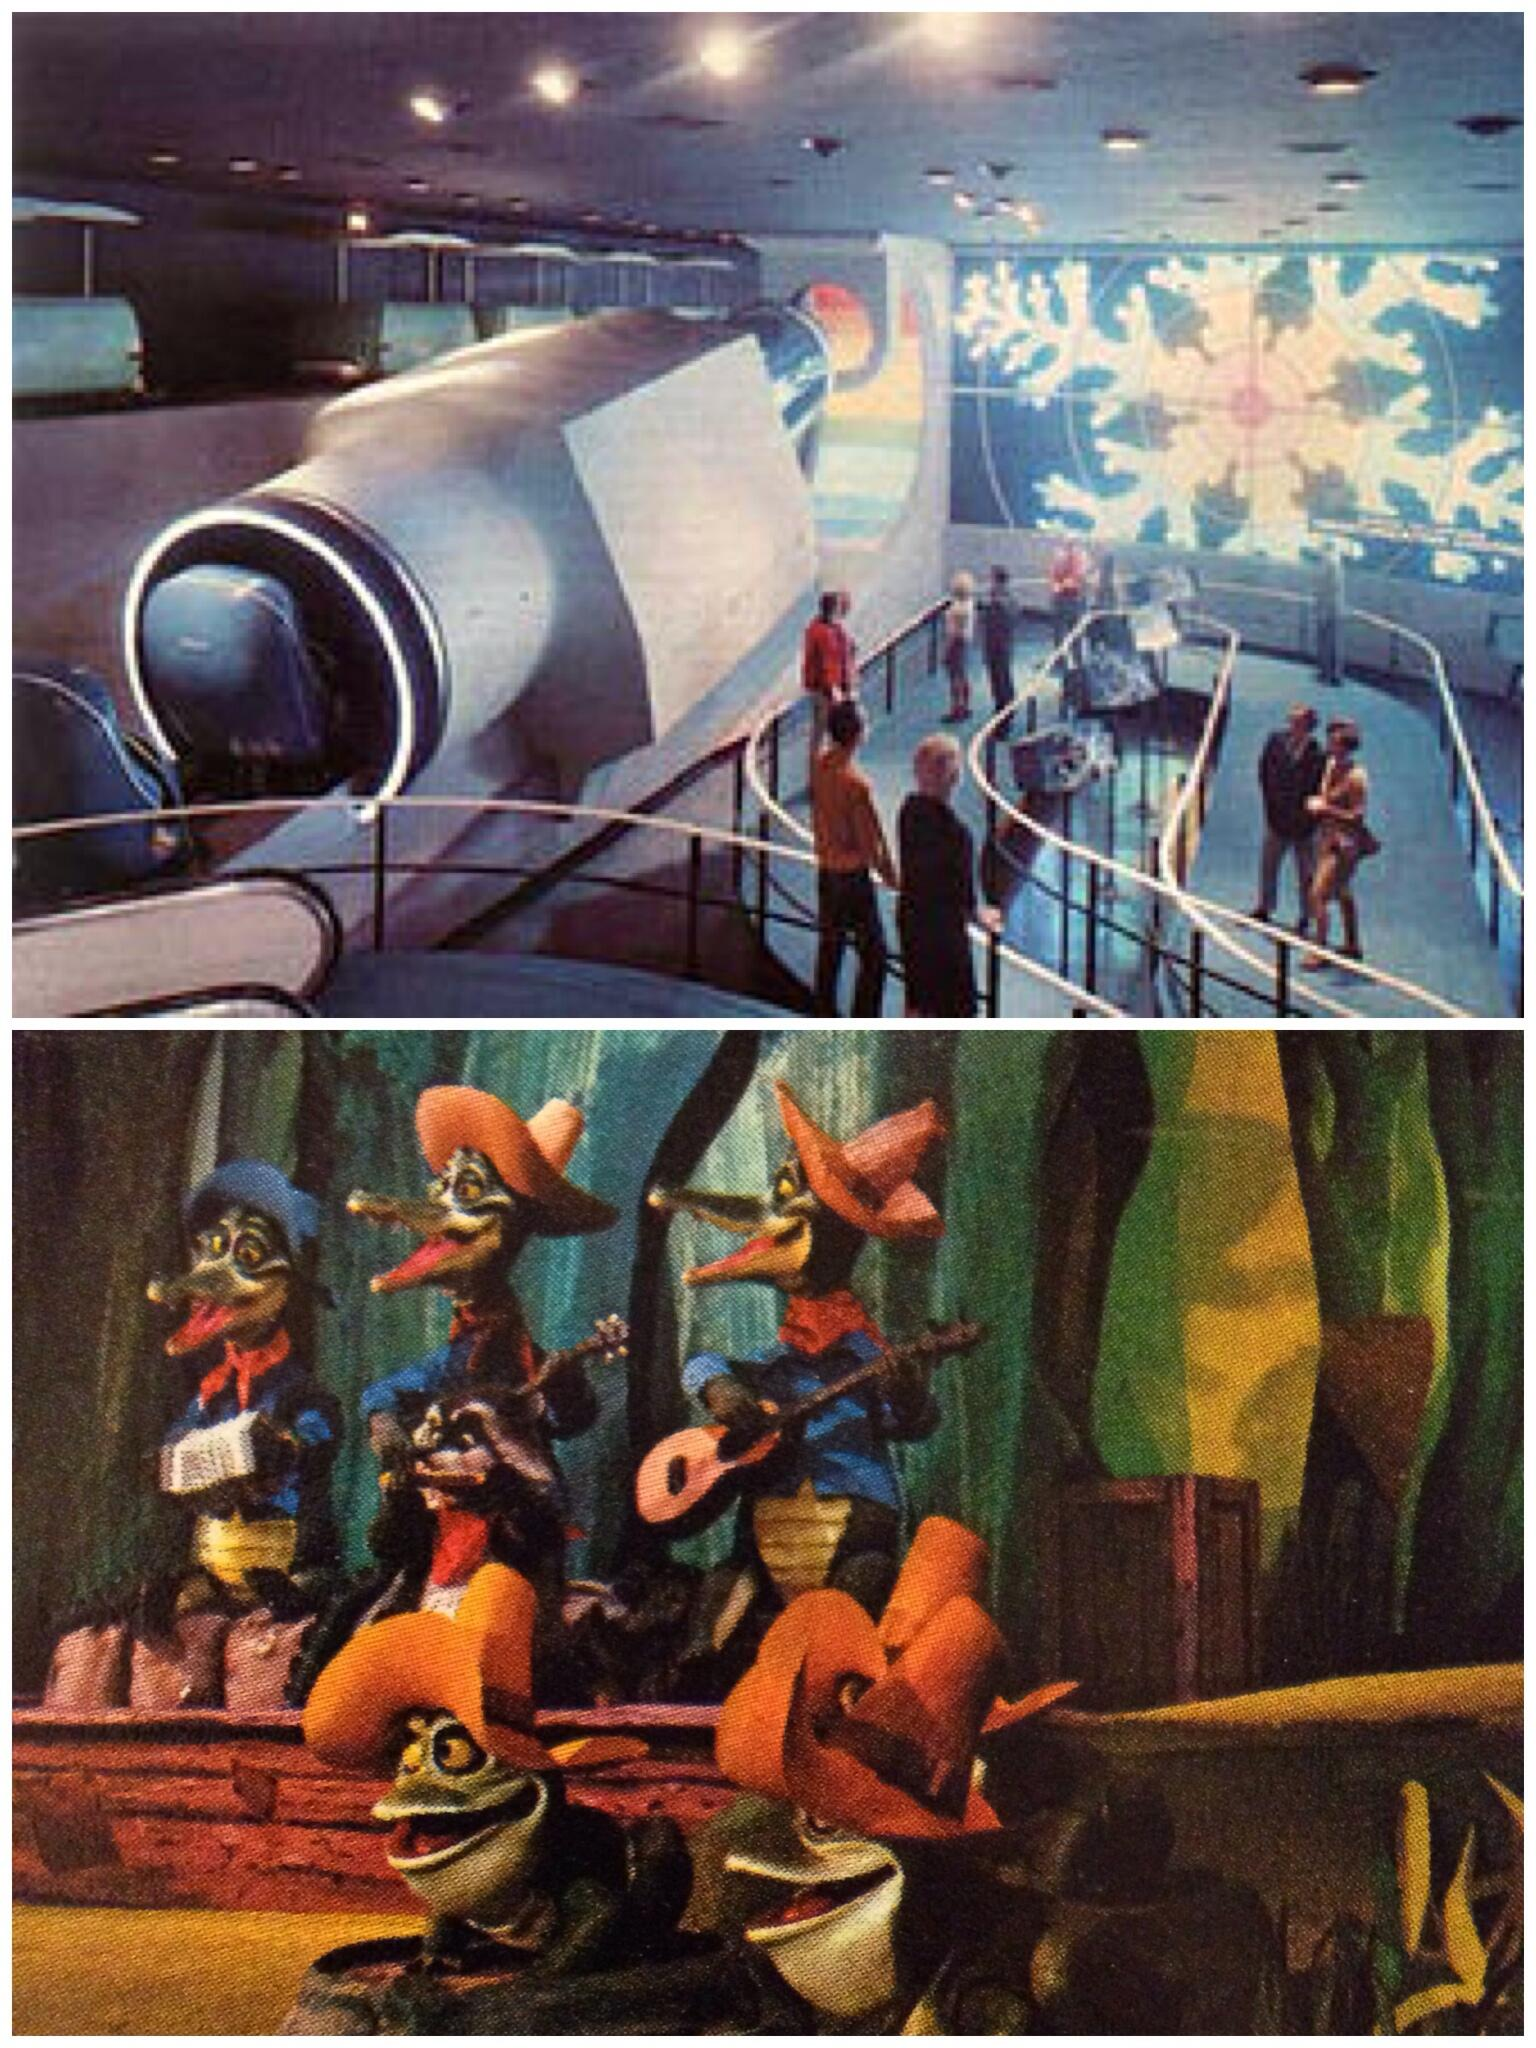 WOULD YOU RATHER go back and ride Disneyland's Adventure Thru Inner Space or experience America Sings? http://t.co/n6YgTcqFJv